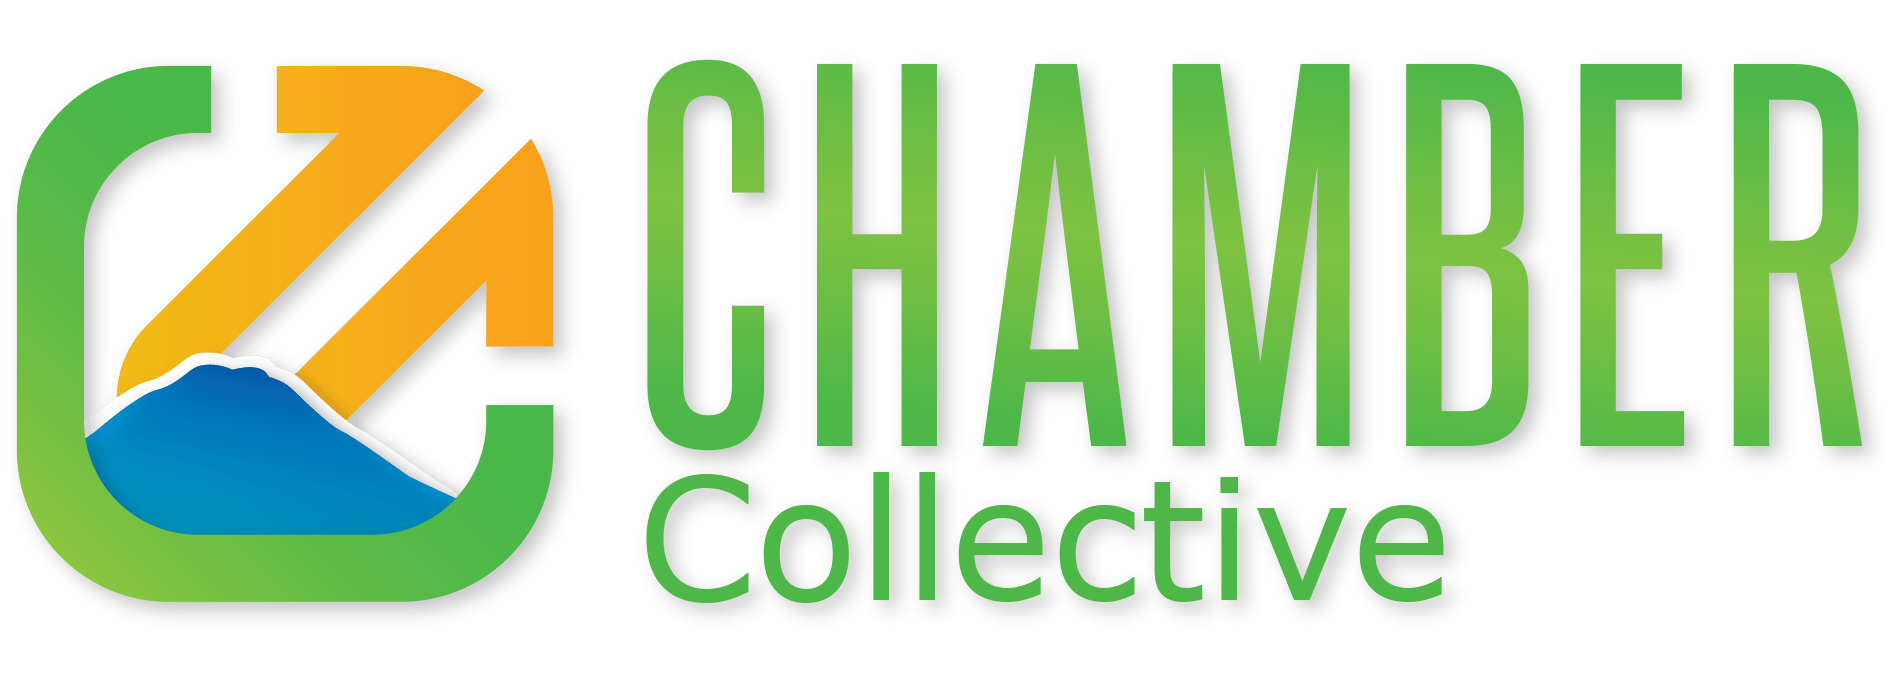 The Chamber Collective Logo